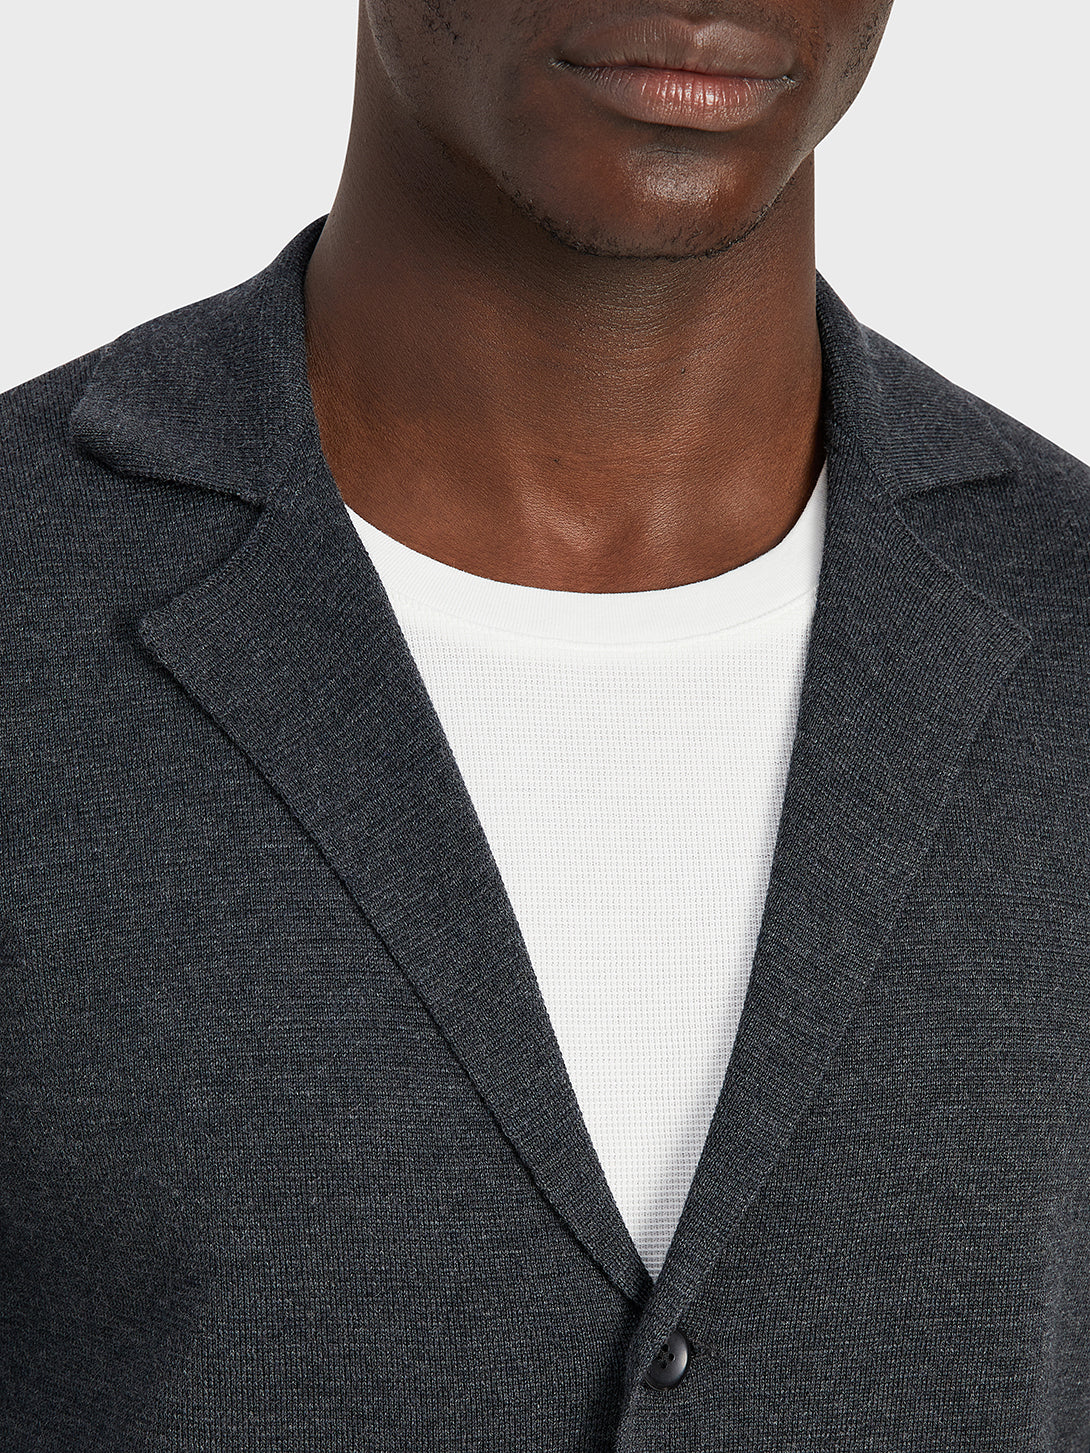 black friday deals ONS Clothing Men's Cole wool cardigan in CHARCOAL